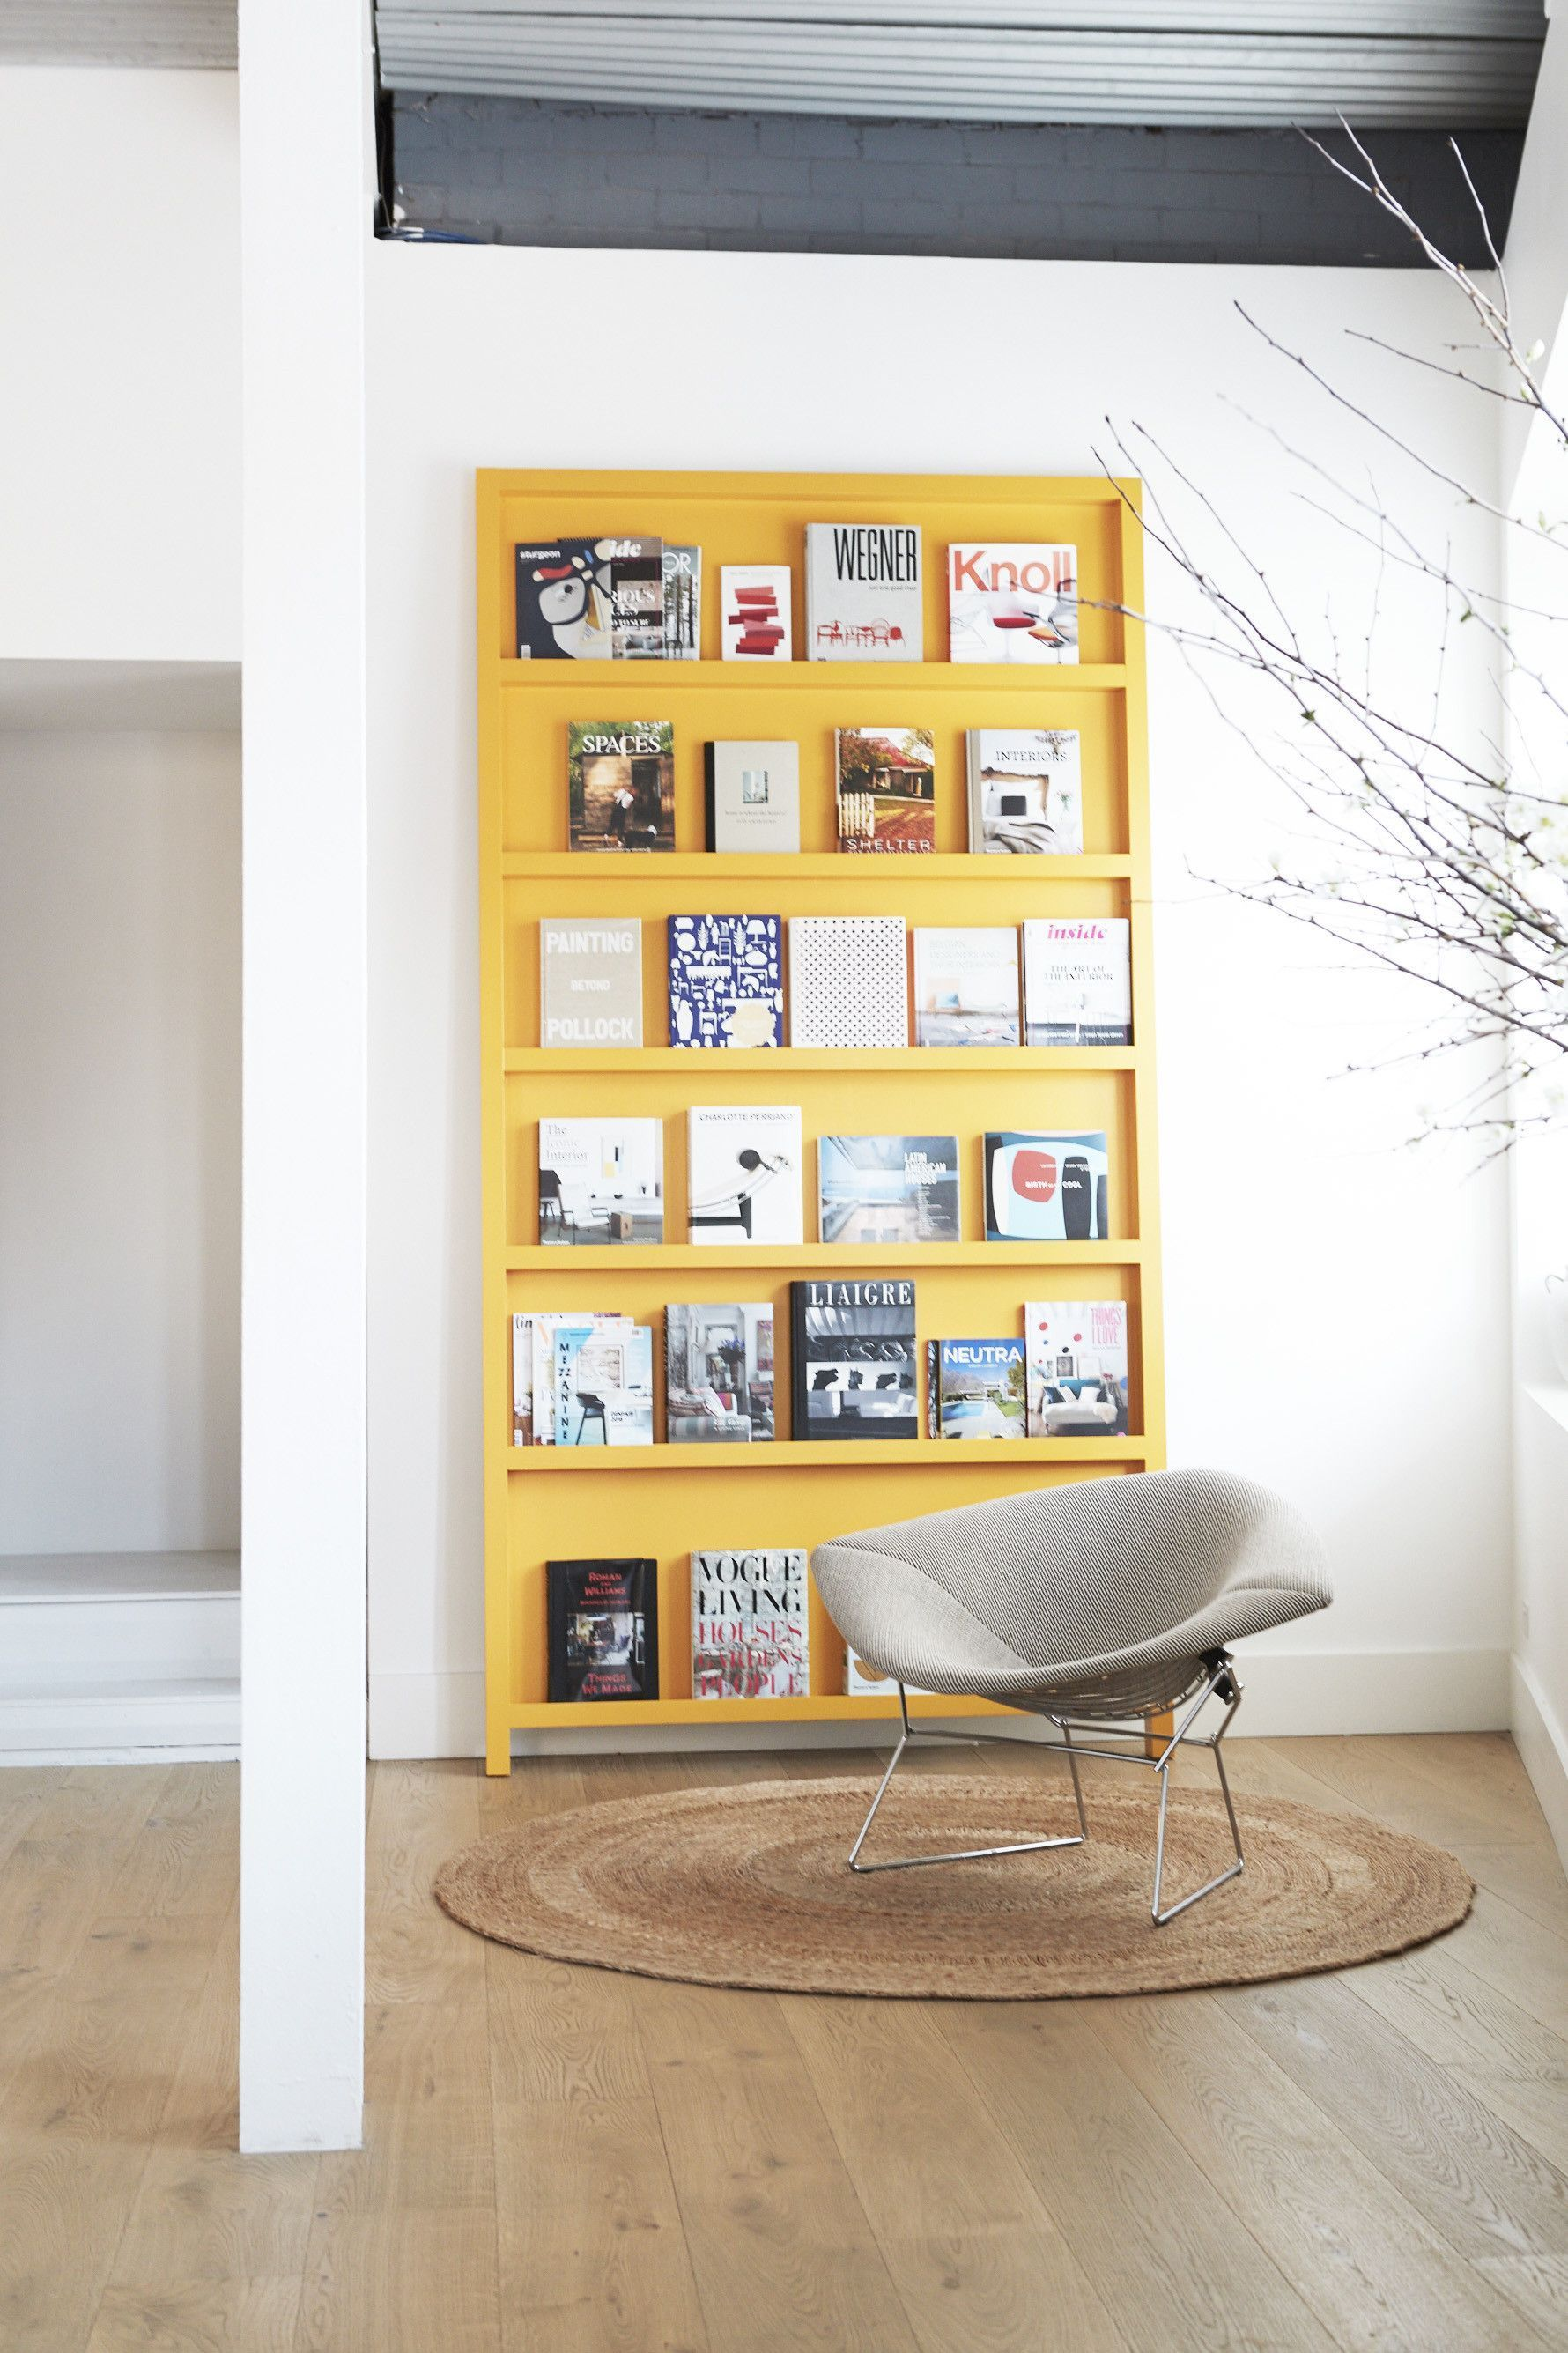 tall along against ideas inspiration insert yellow bookshelf unique wood concrete bookshelves accent lovely with cabinet window molding sill vertical impressive ikea teamed beauty captivating furniture enthralling frames solid bookcase double home striking design bedroom performing bookcases teenage office in daybed shelves functional